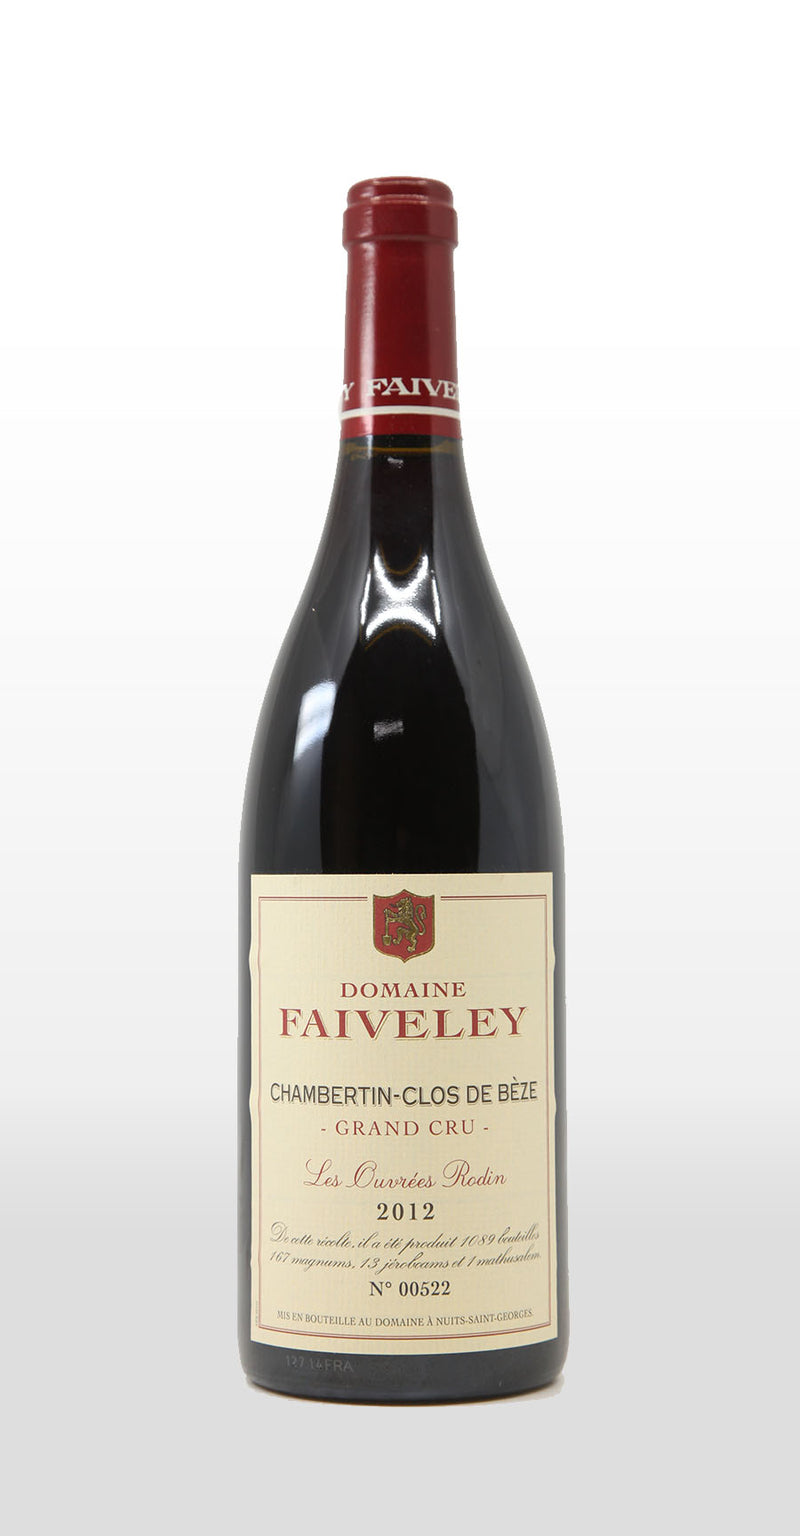 FAIVELEY CHAMBERTIN-CLOS DE BEZE GRAND CRU LES OUVREES RODIN 2012 750ML